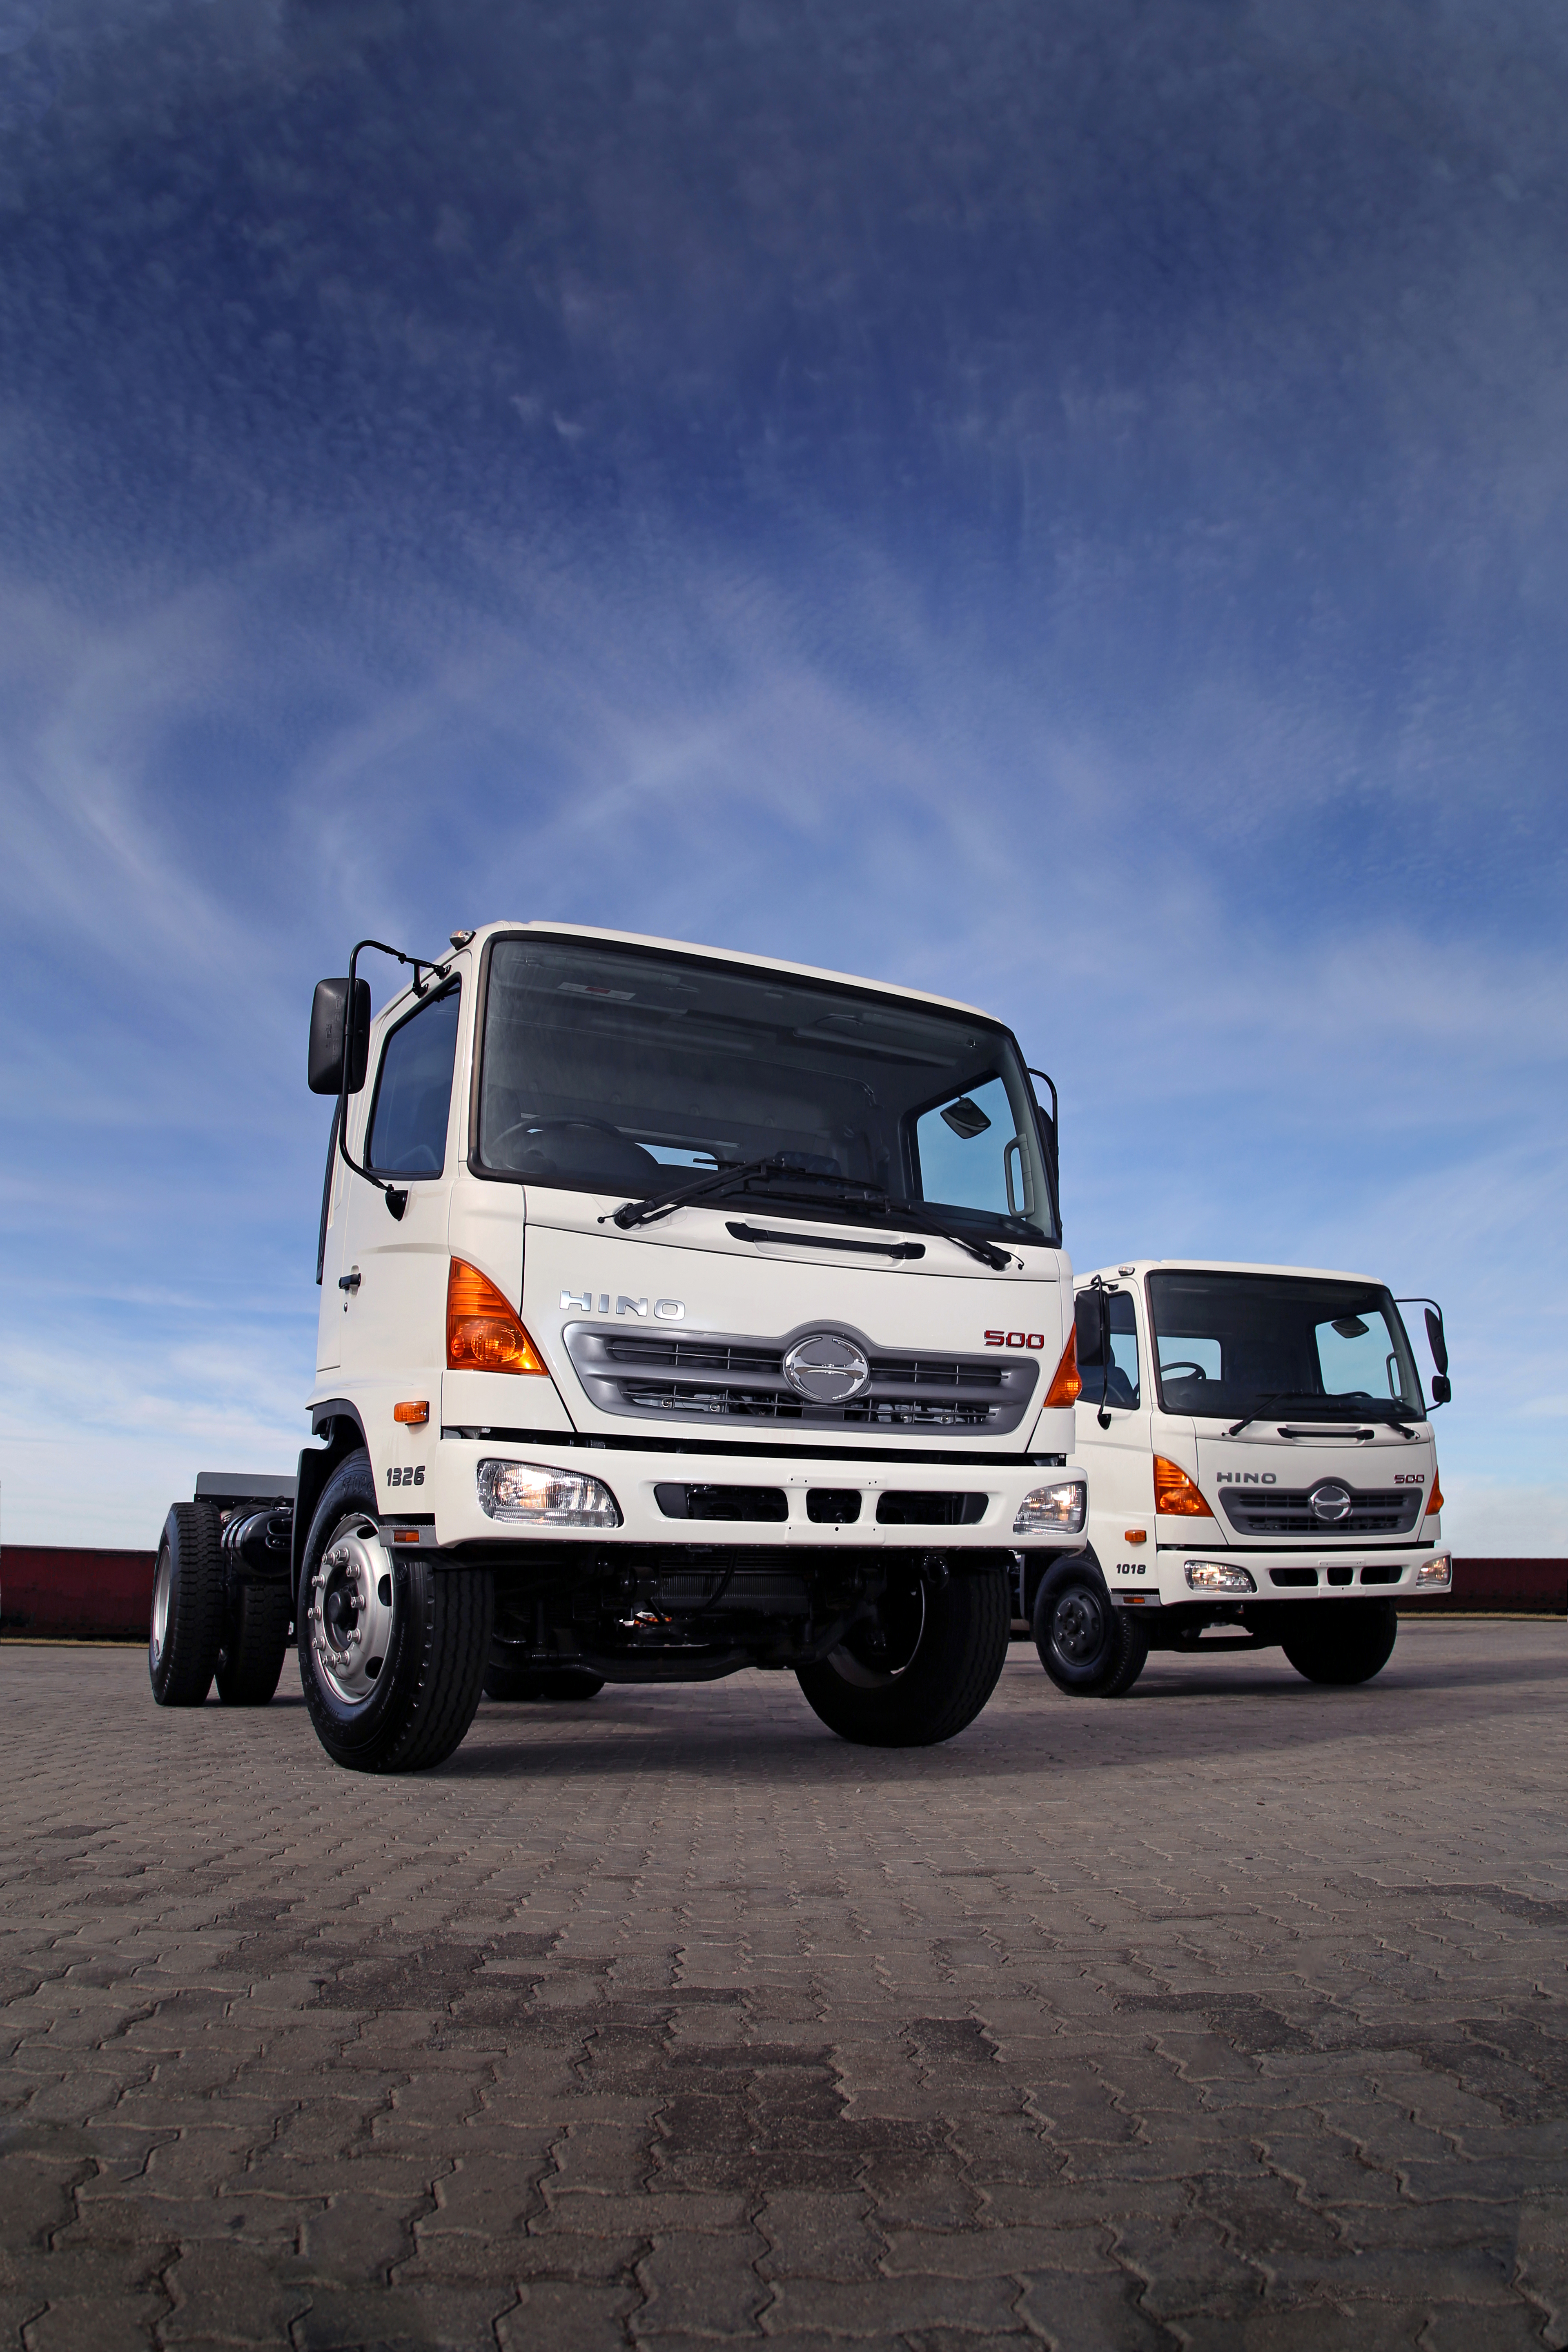 REVISIONS BEING MADE TO HINO 500-SERIES TRUCK RANGE